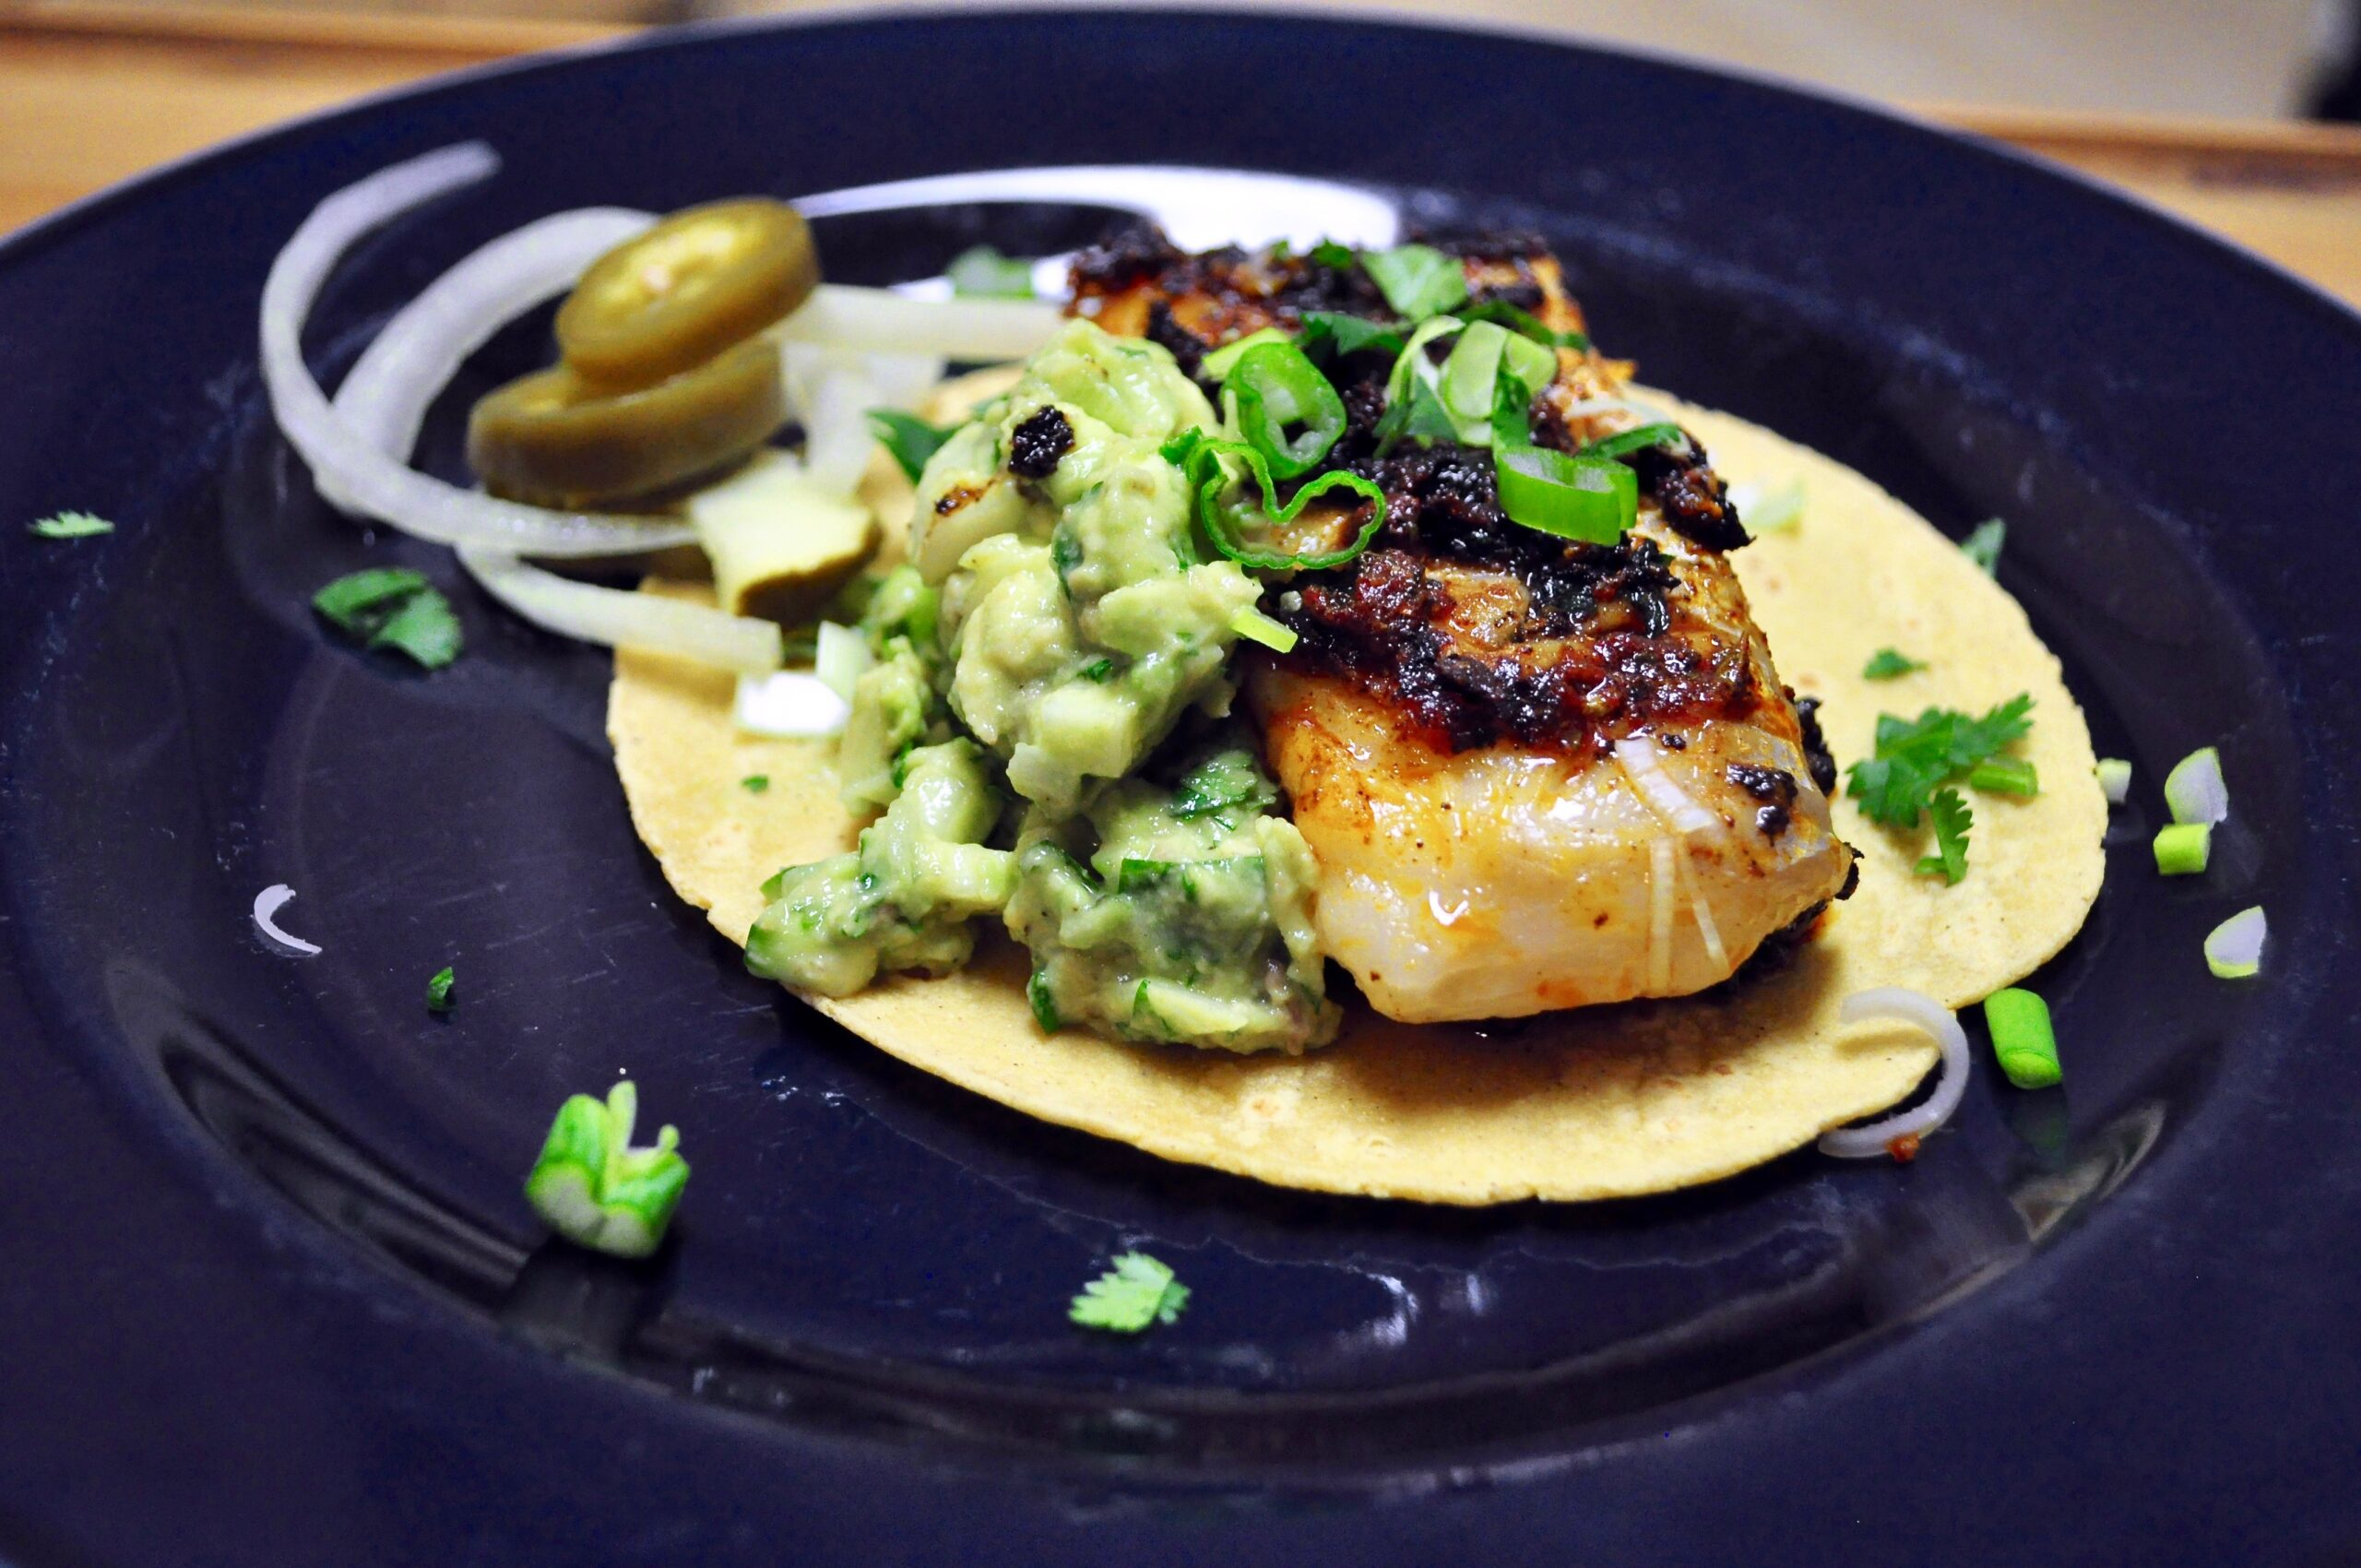 Epically Spiced Cod Fish Tacos with Paleo & Low Carb Option